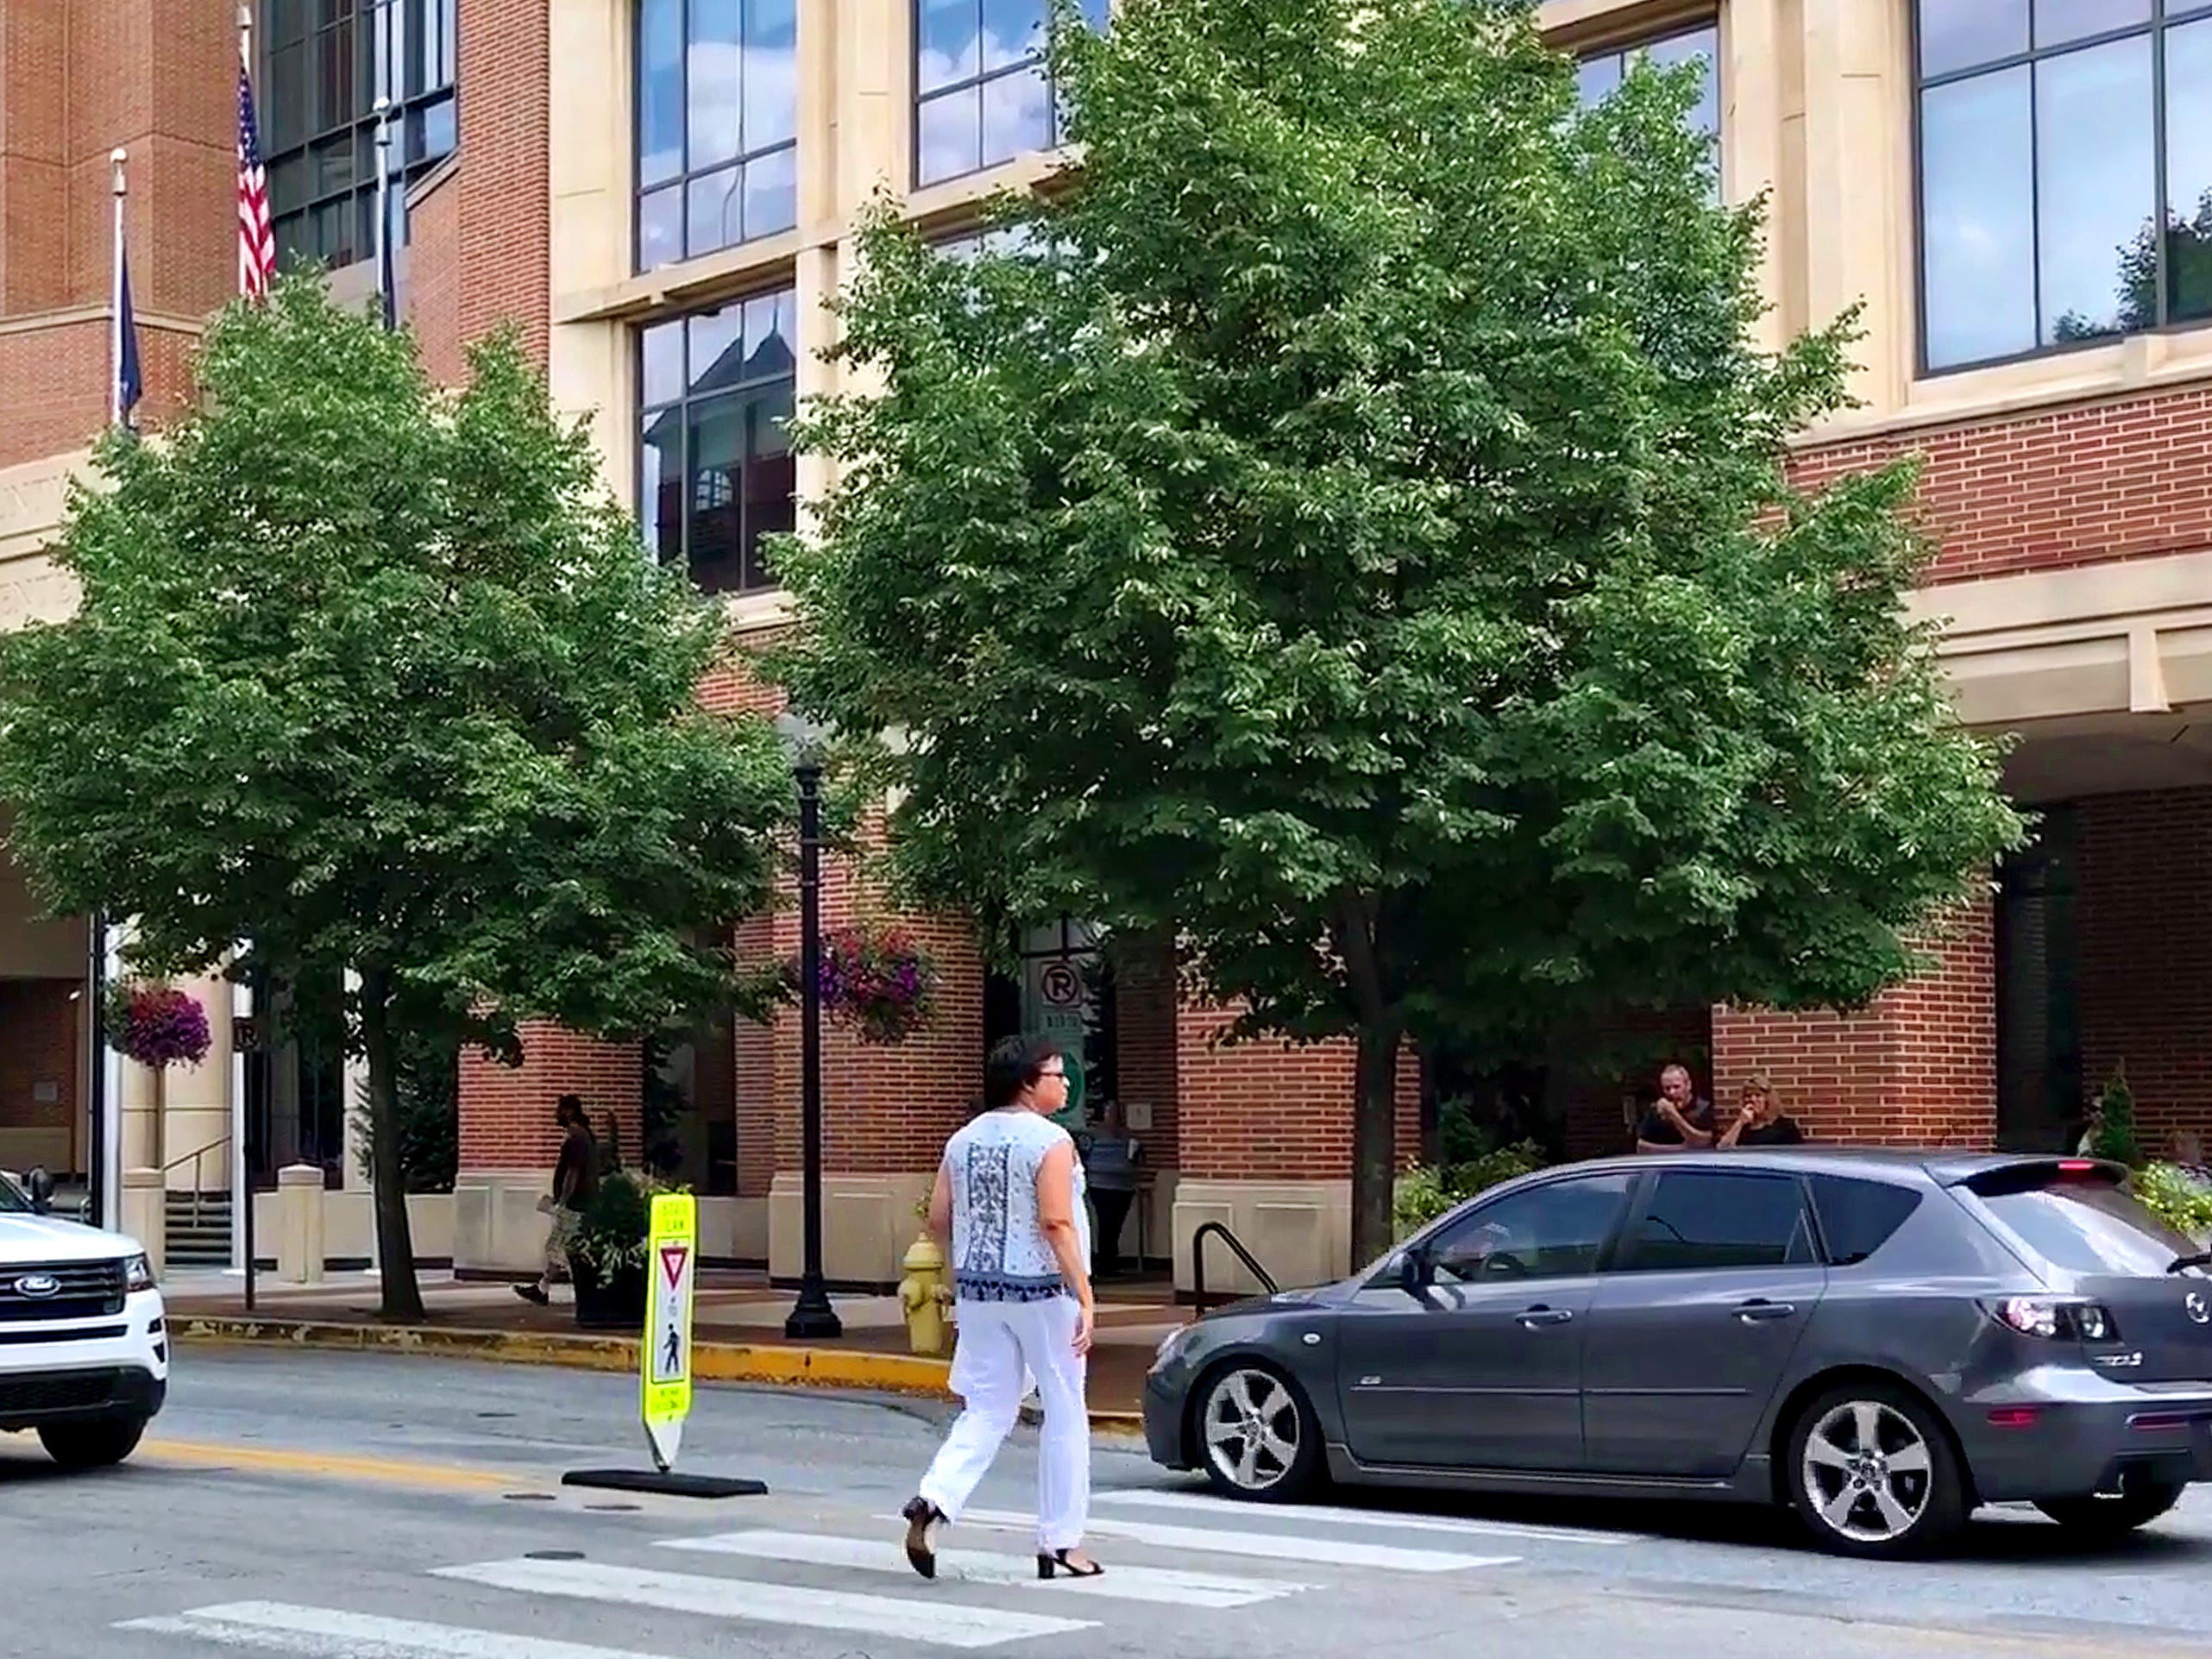 A driver crosses a crosswalk in front of a pedestrian as York City Police conduct pedestrian safety enforcement detail at the intersection of North George Street and Clarke Avenue over the lunch hour in York City, Friday, Aug. 10, 2018. Dawn J. Sagert